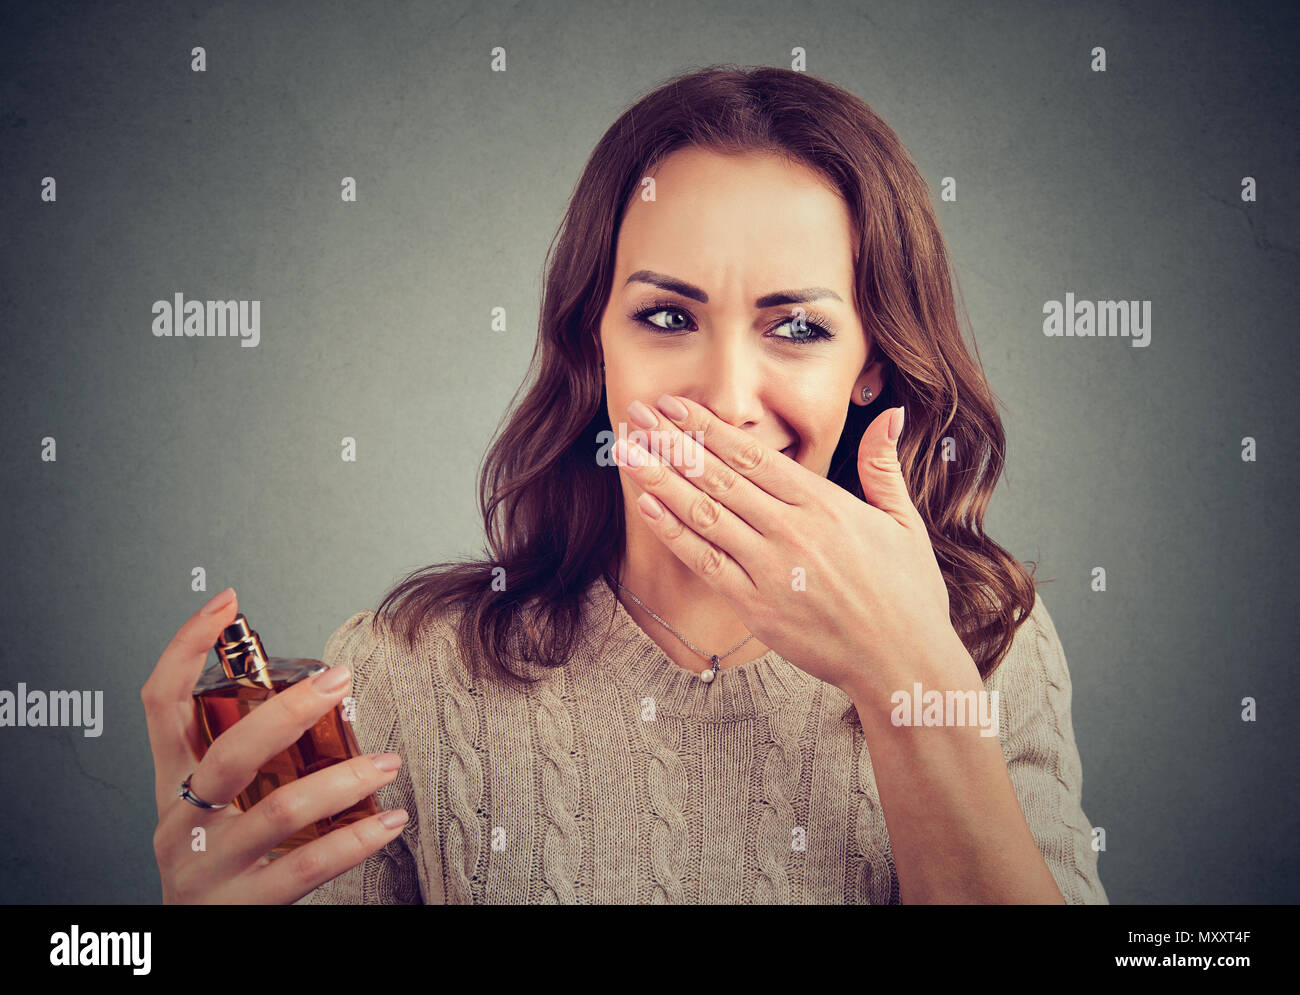 Young woman disgusted with unpleasant stinky perfume holding nose. - Stock Image